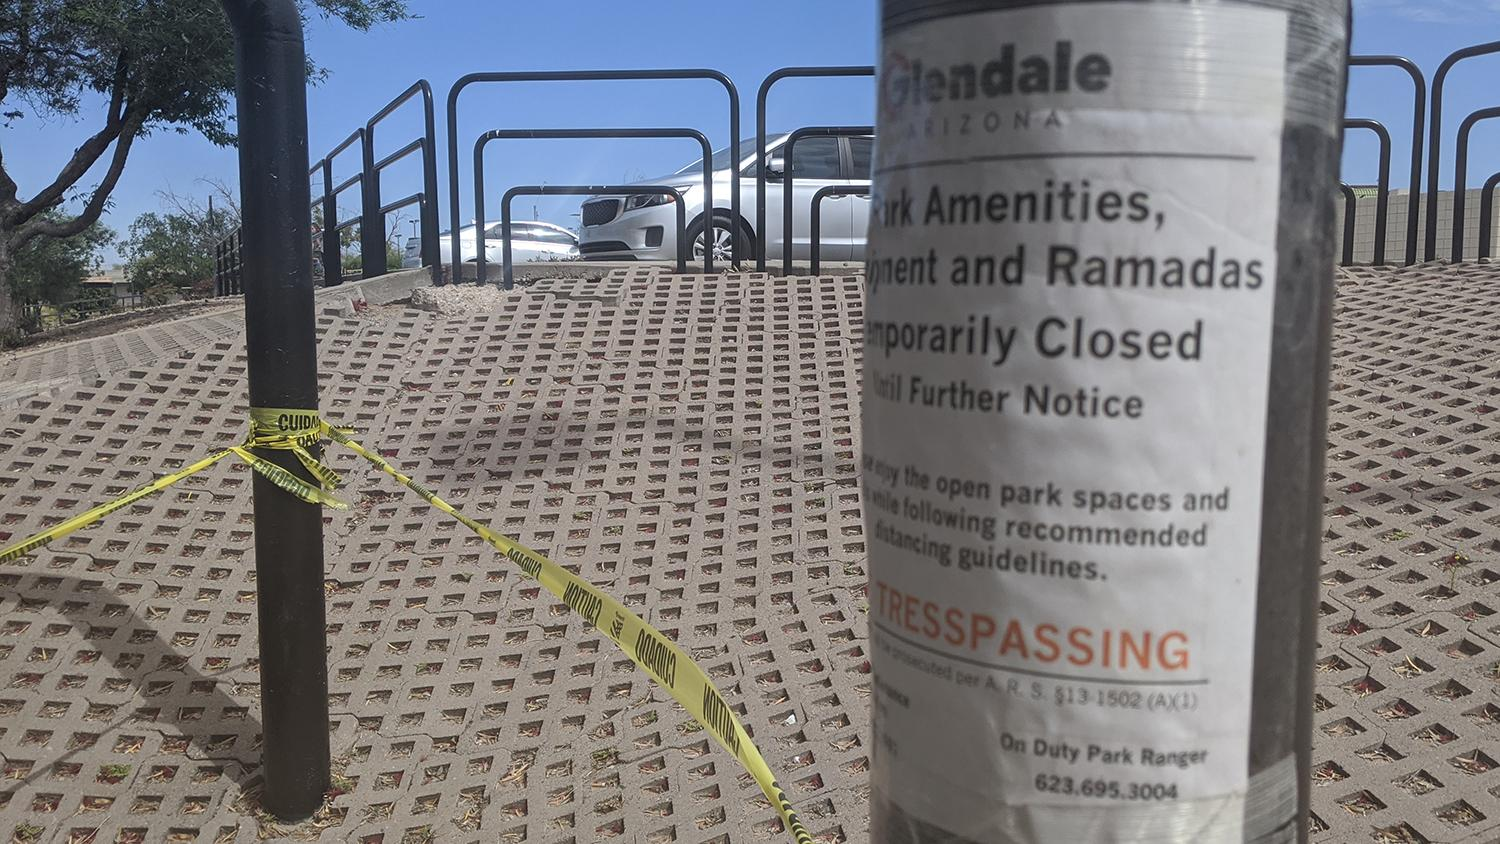 Closed ramadas at a Glendale park